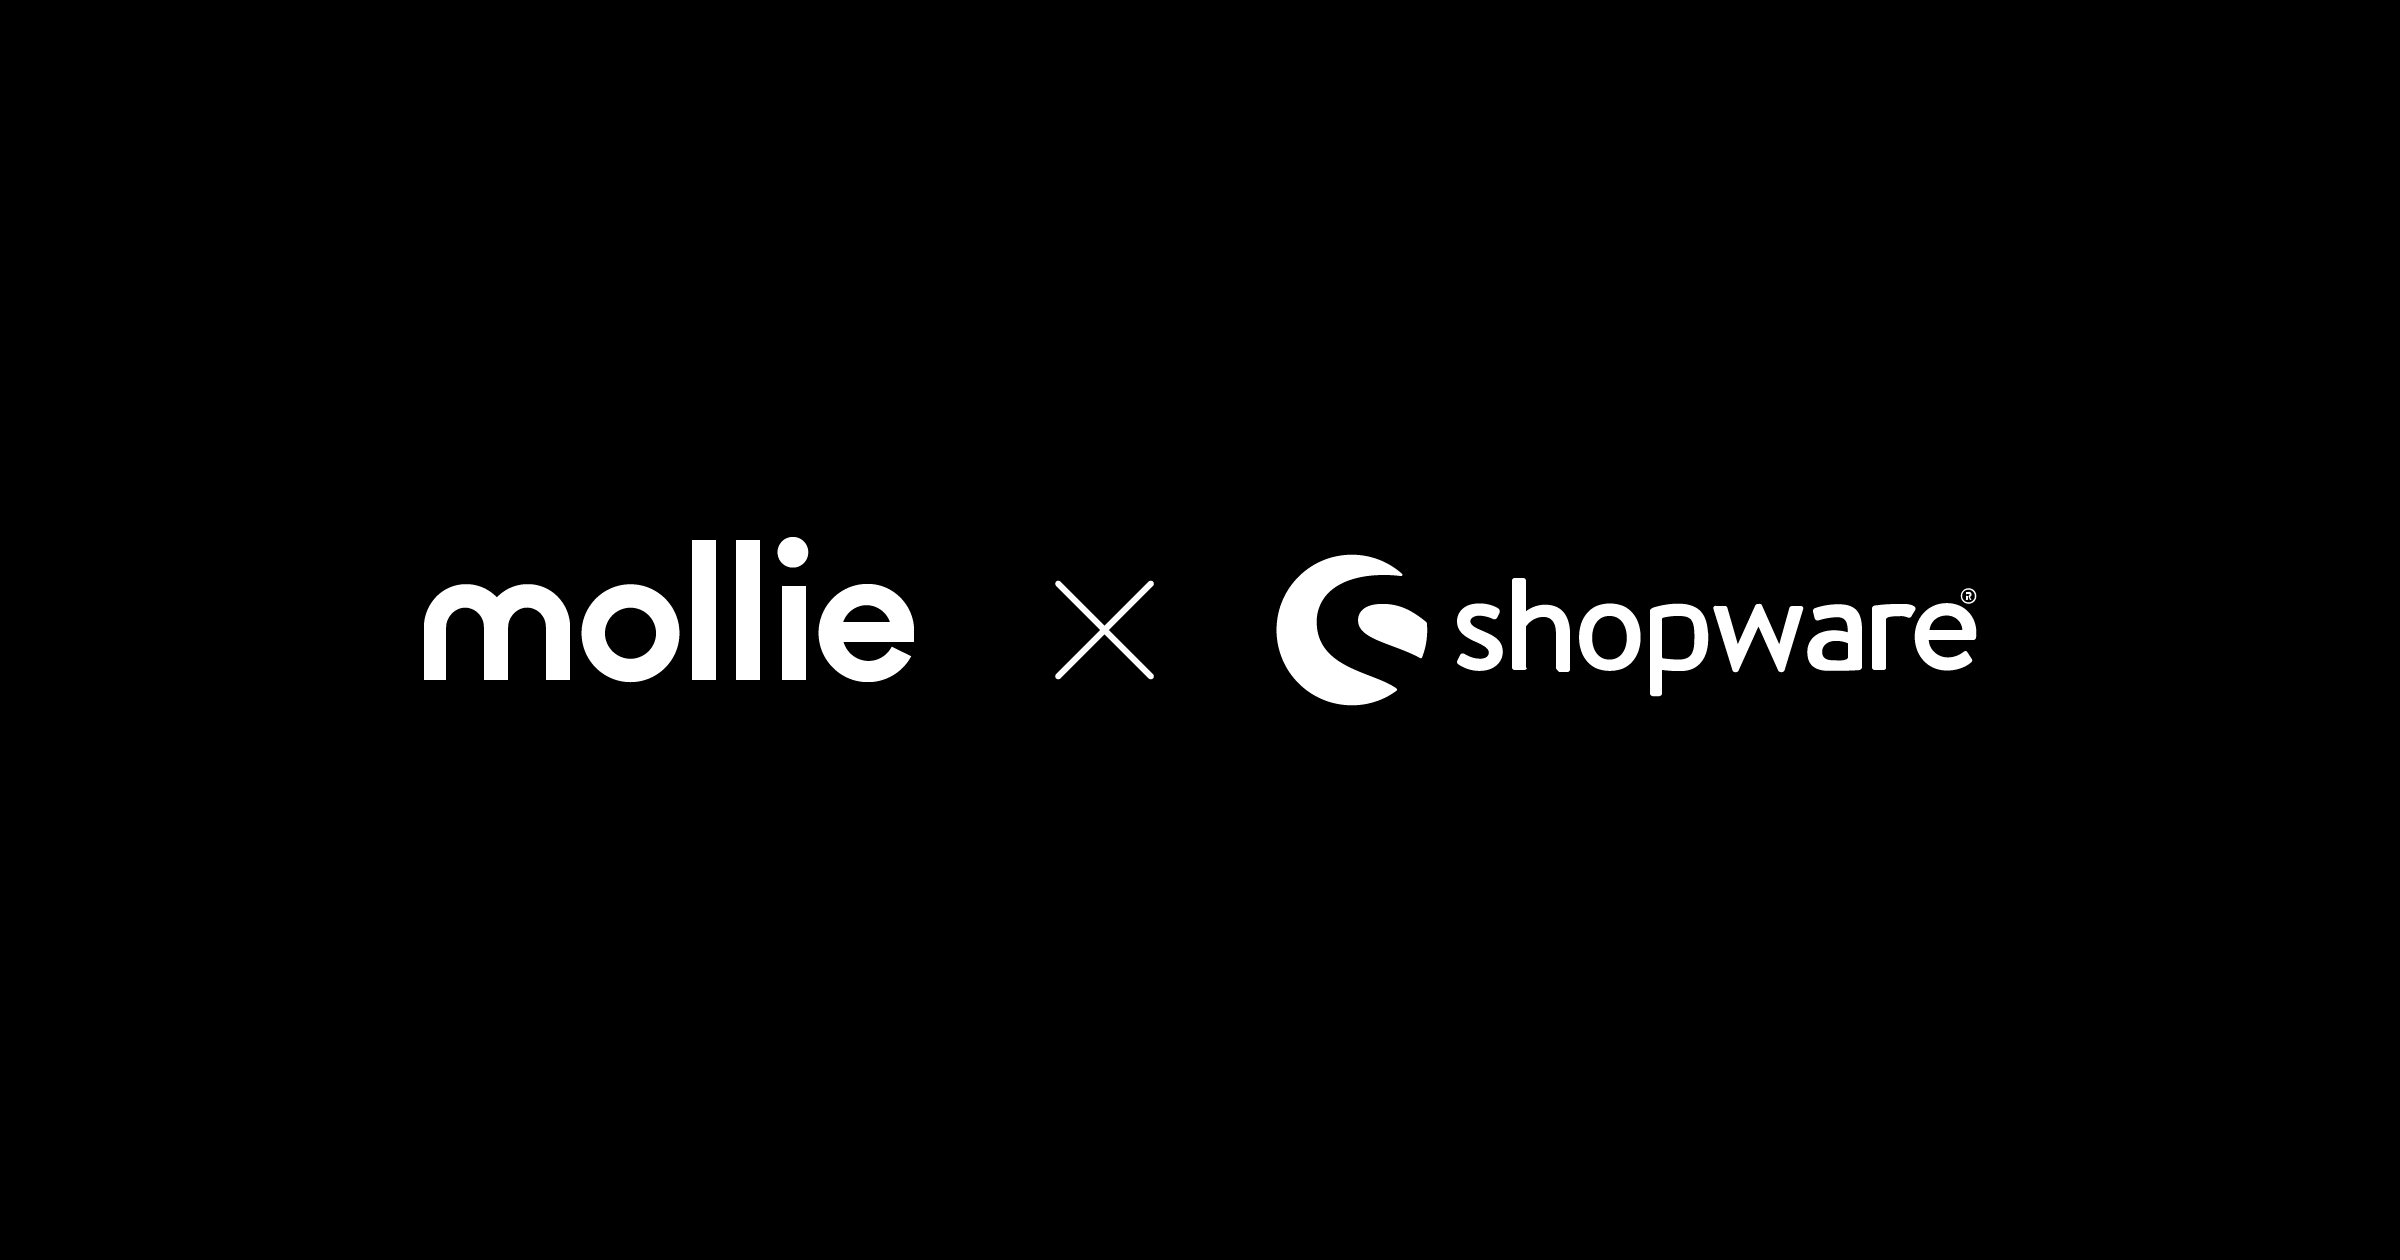 Mollie and Shopware seal business relationship